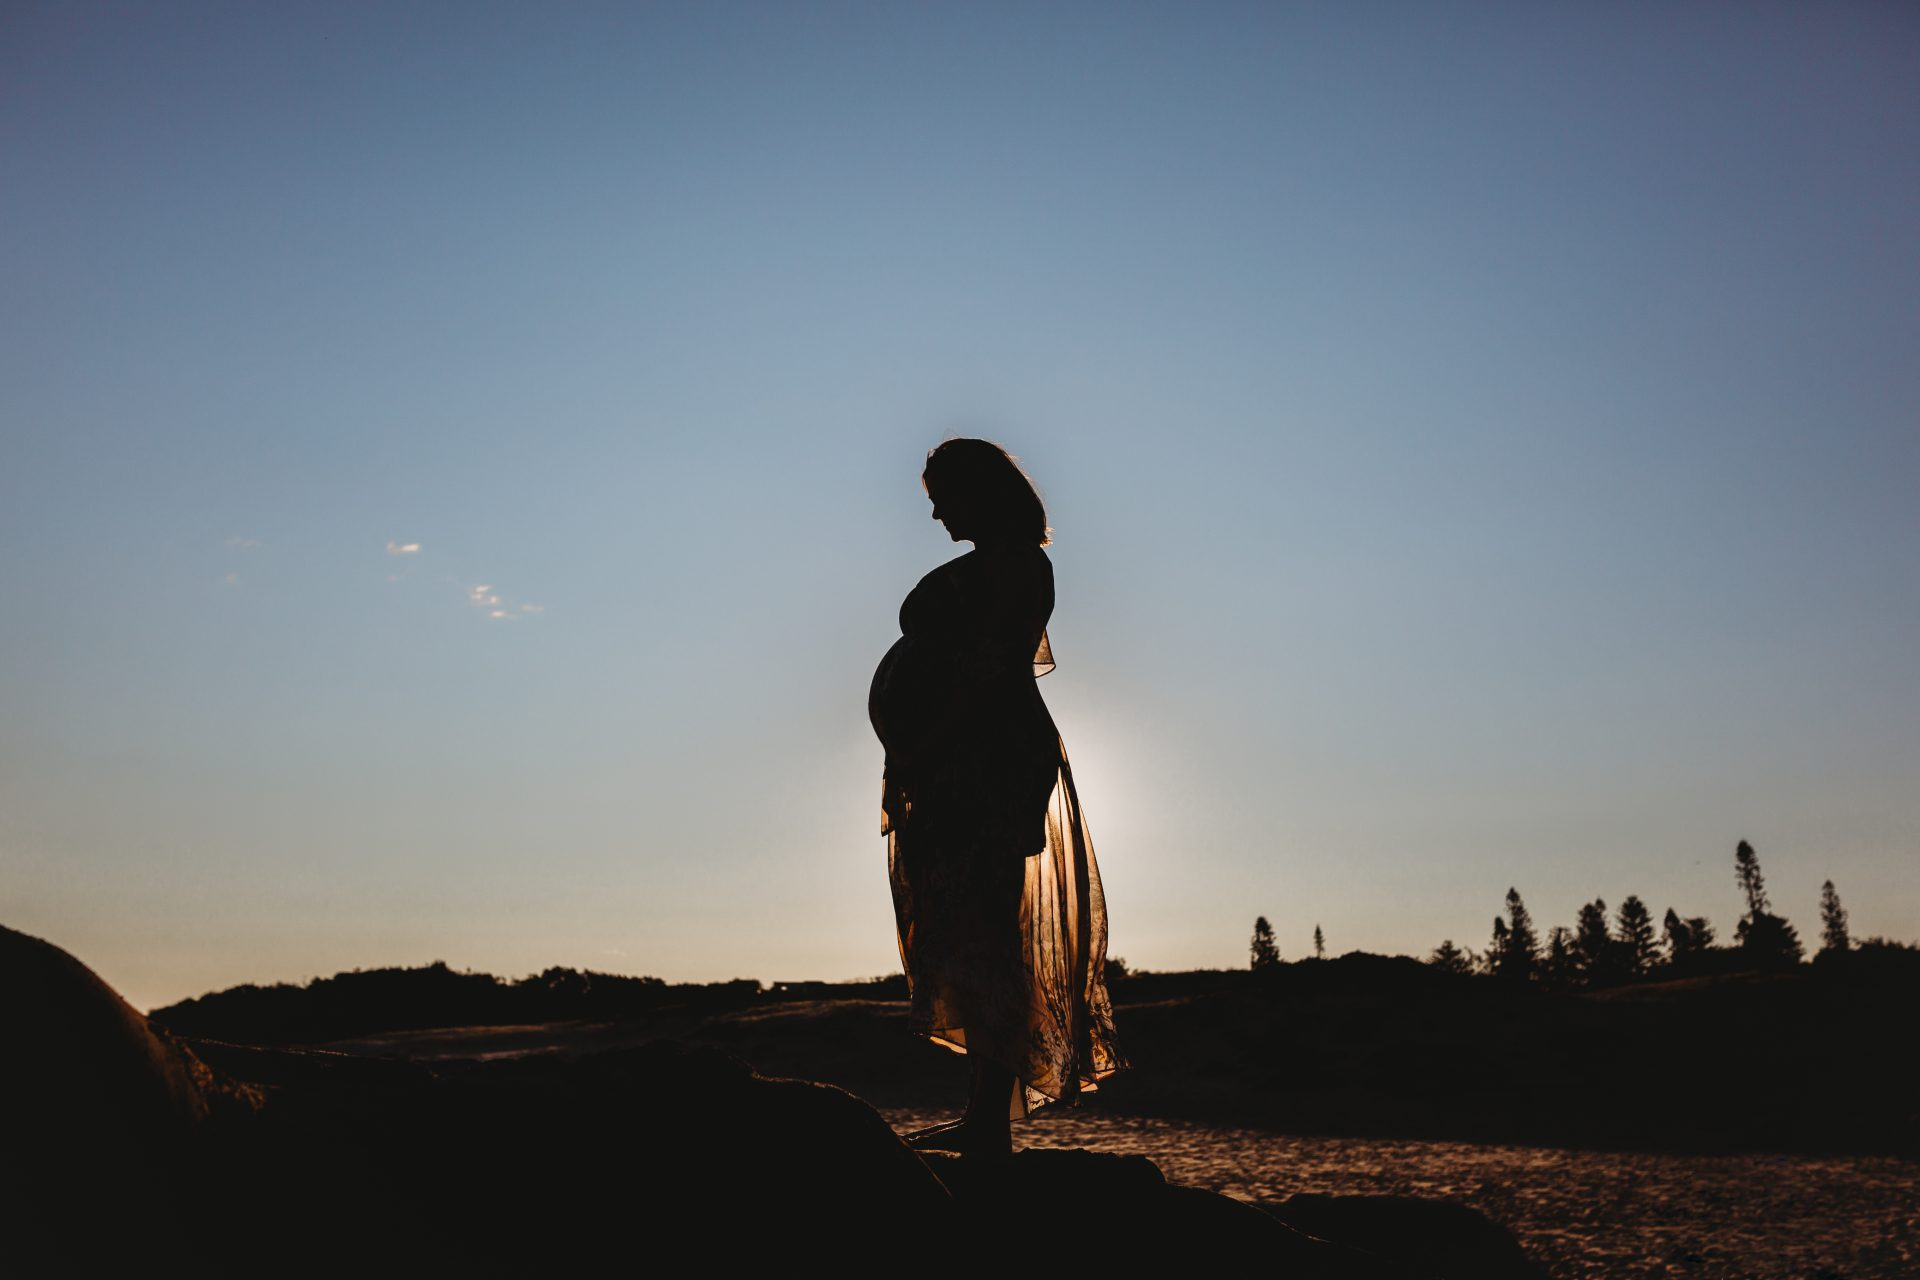 Pregnant woman silhouetted against a late afternoon sky